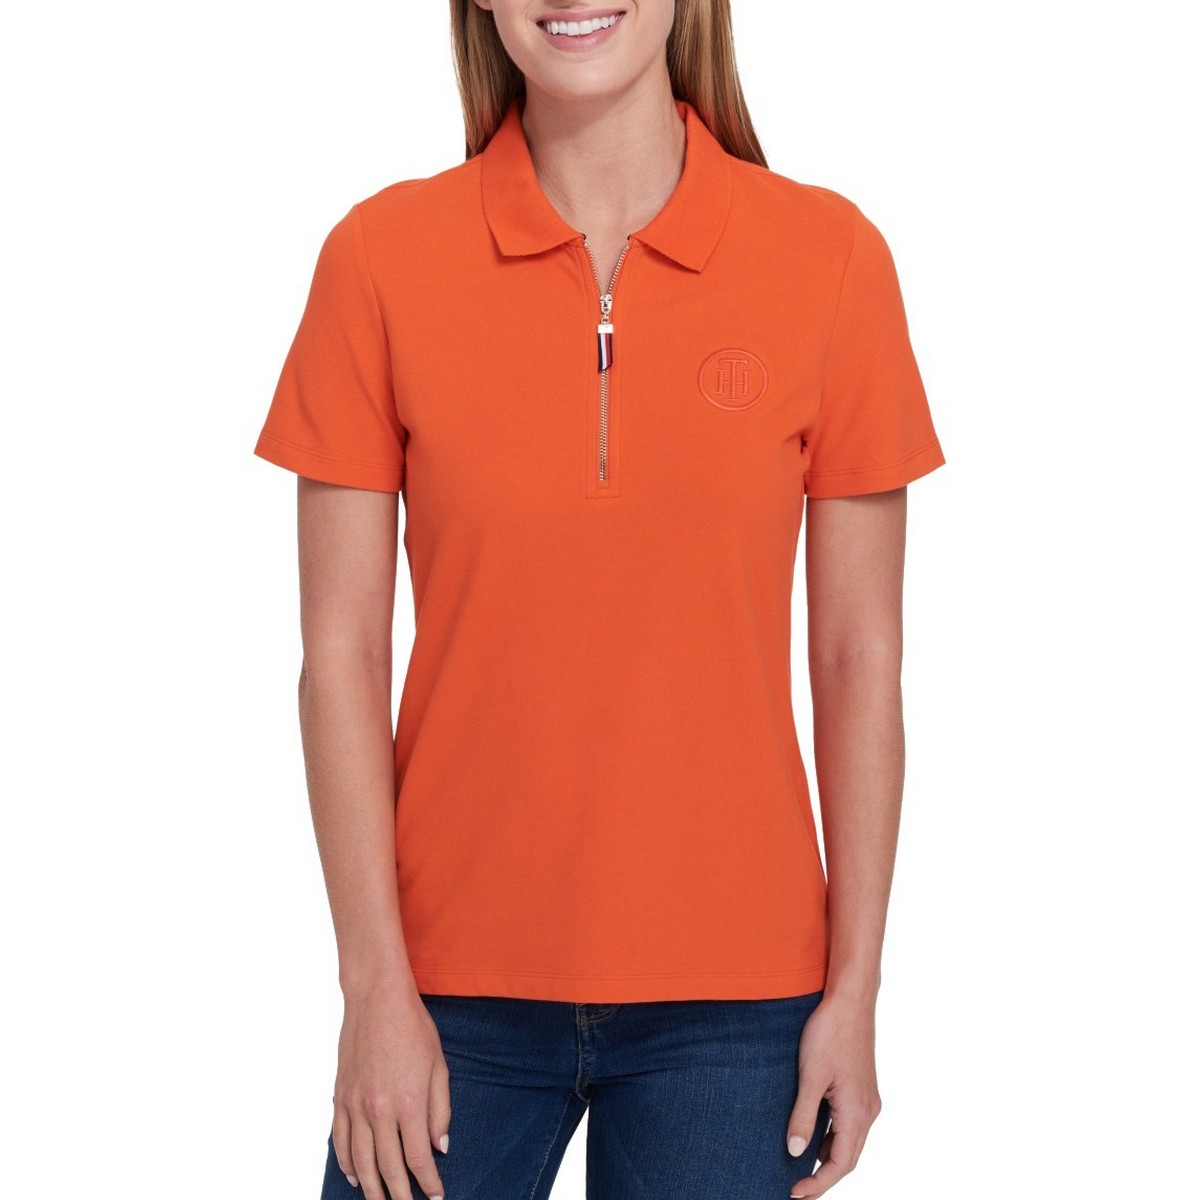 38189827 Details about TOMMY HILFIGER NEW Women's Short Sleeve 1/2 Zip Polo Shirt Top  TEDO